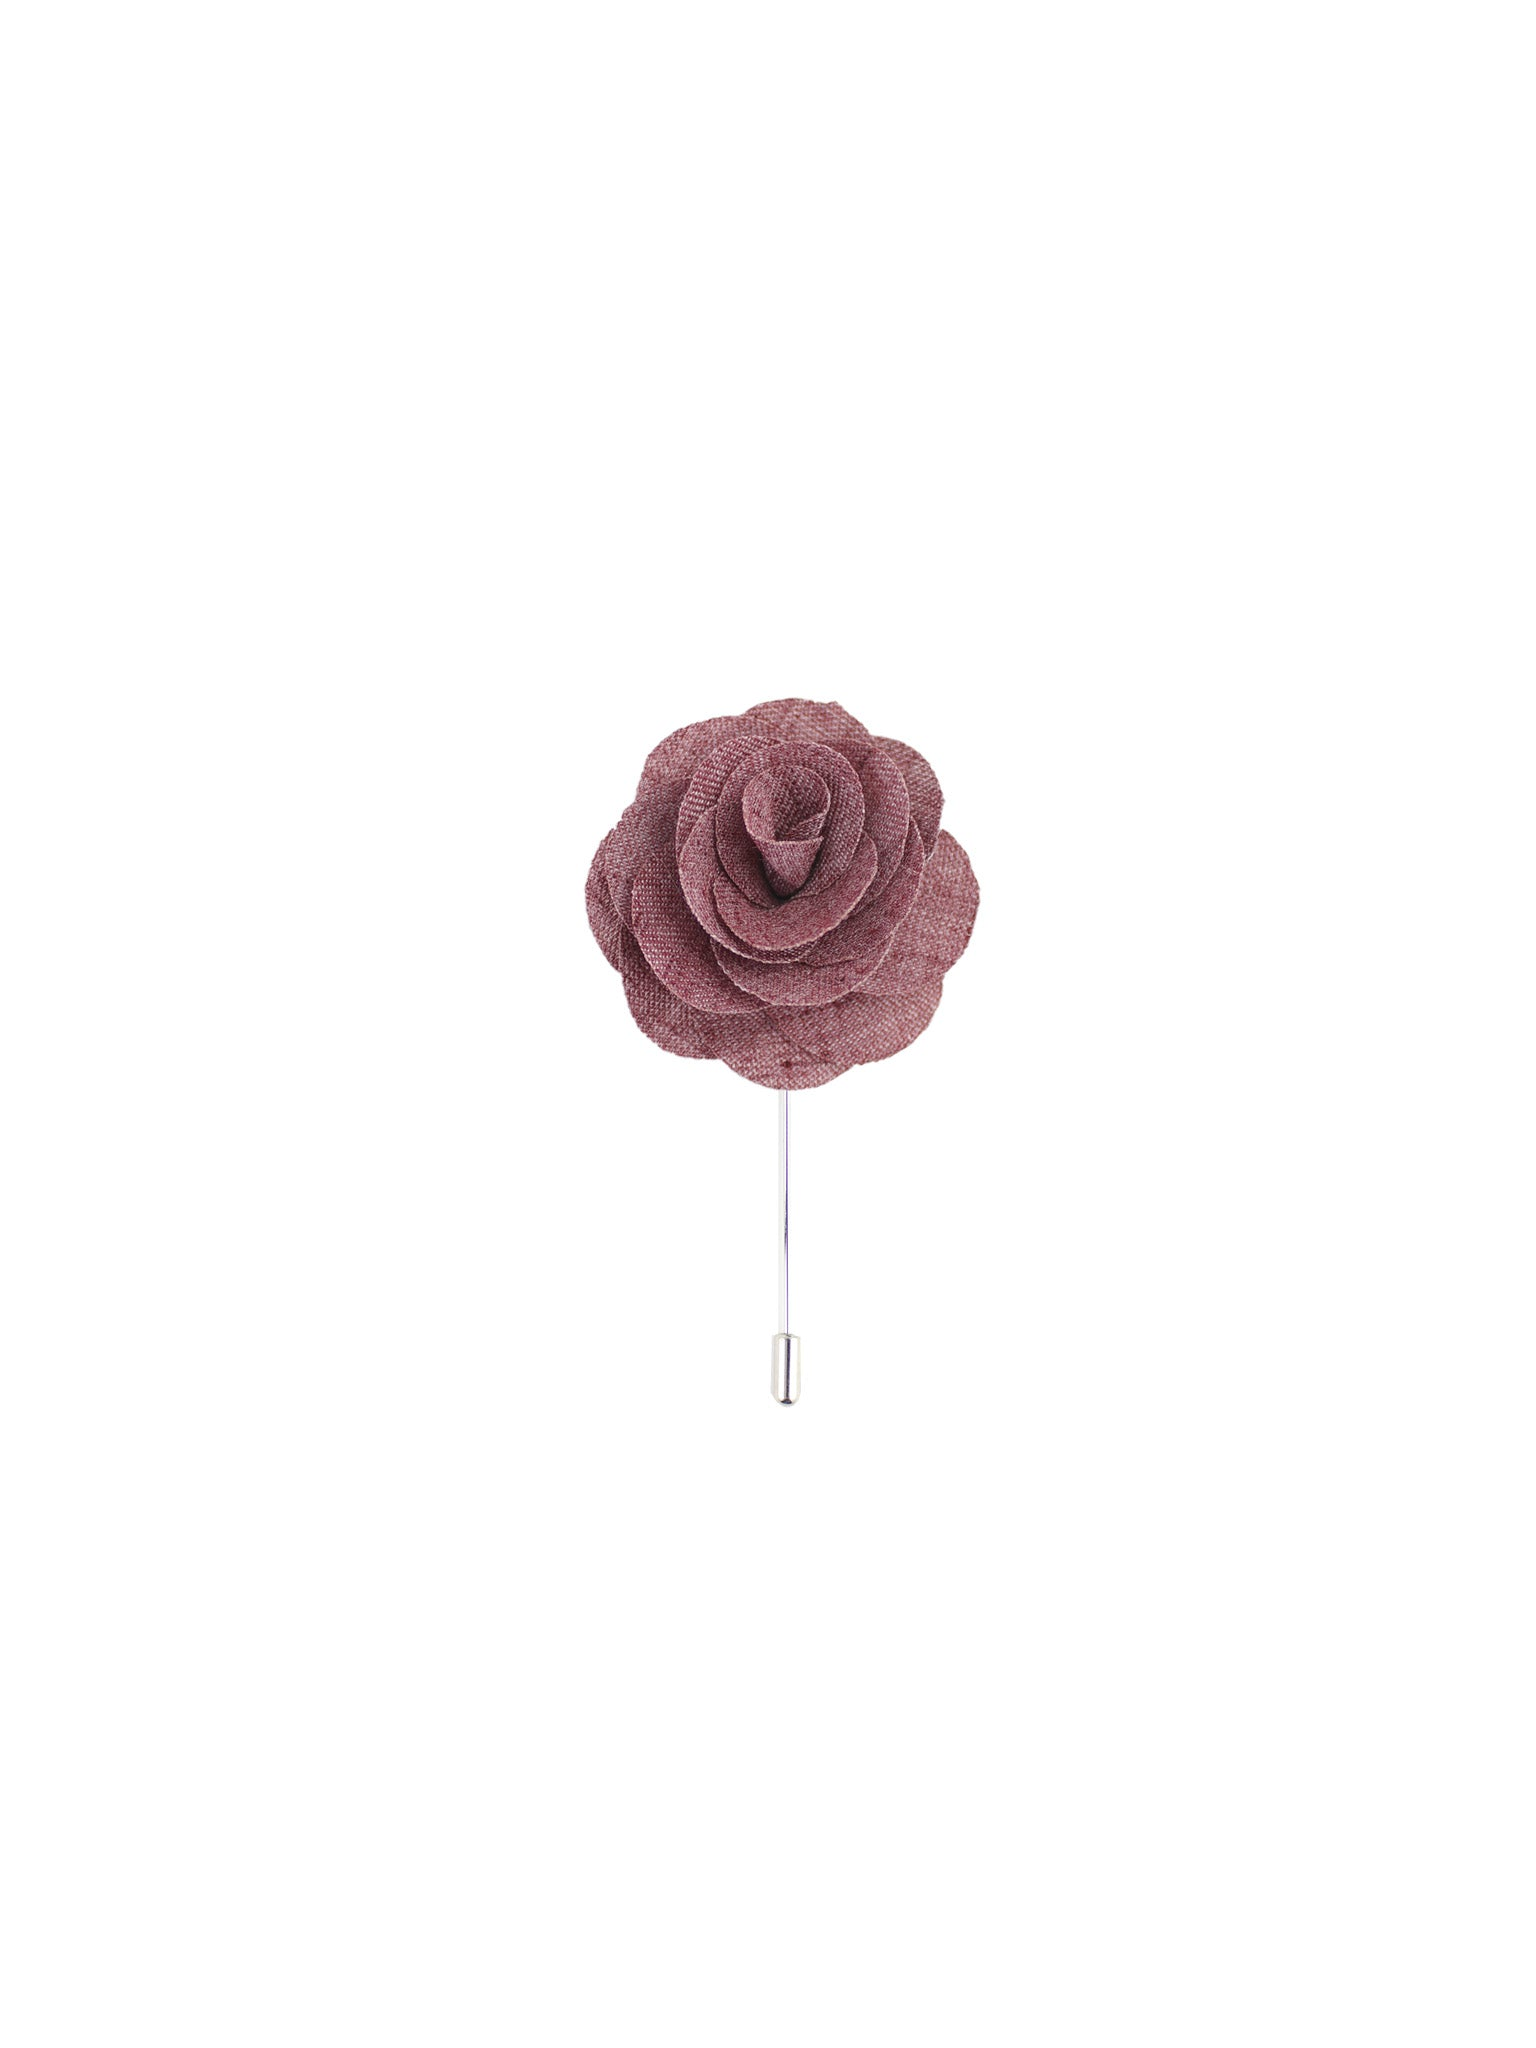 Lightweight Red Lapel Pin from DIBI